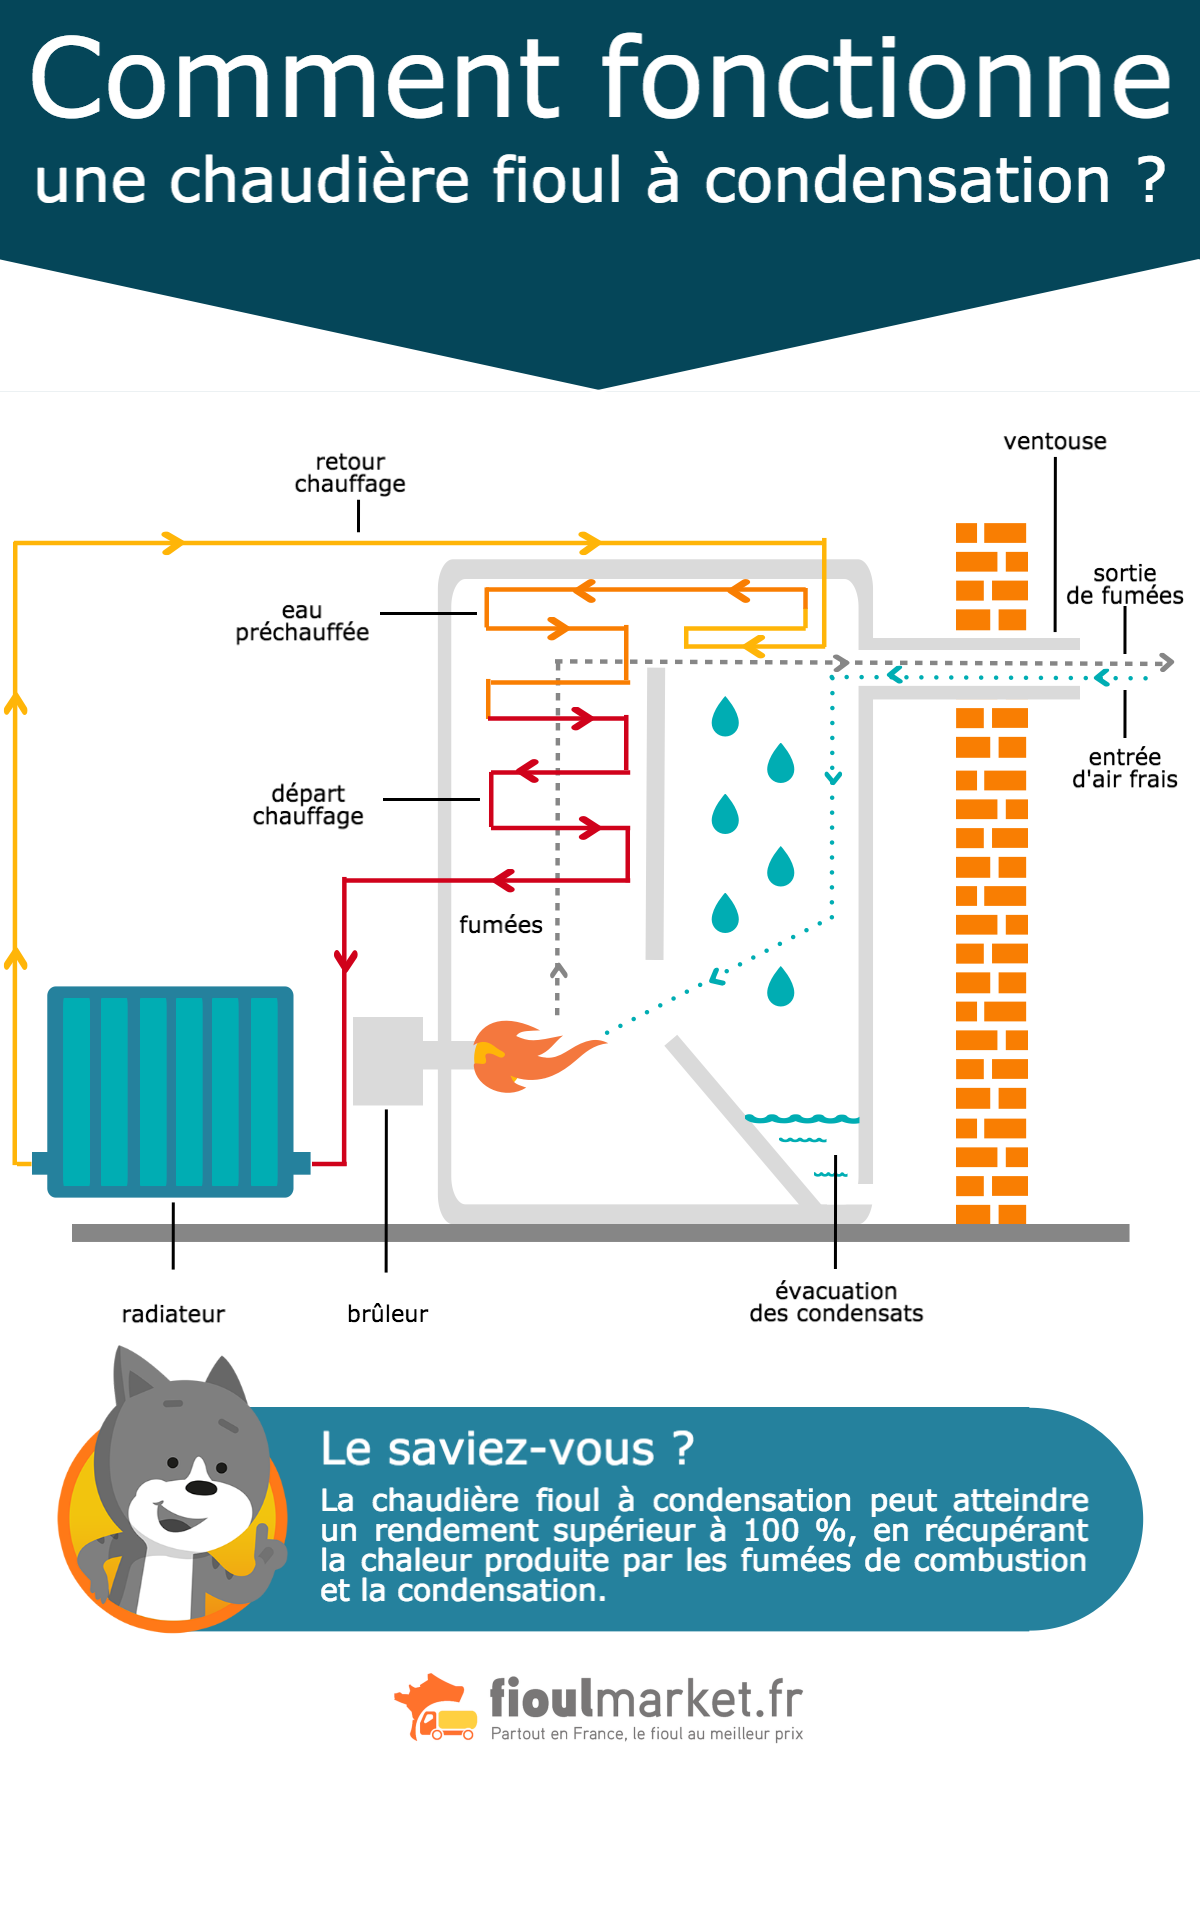 Comment fonctionne une chaudi re fioul condensation for Rendement chaudiere a condensation